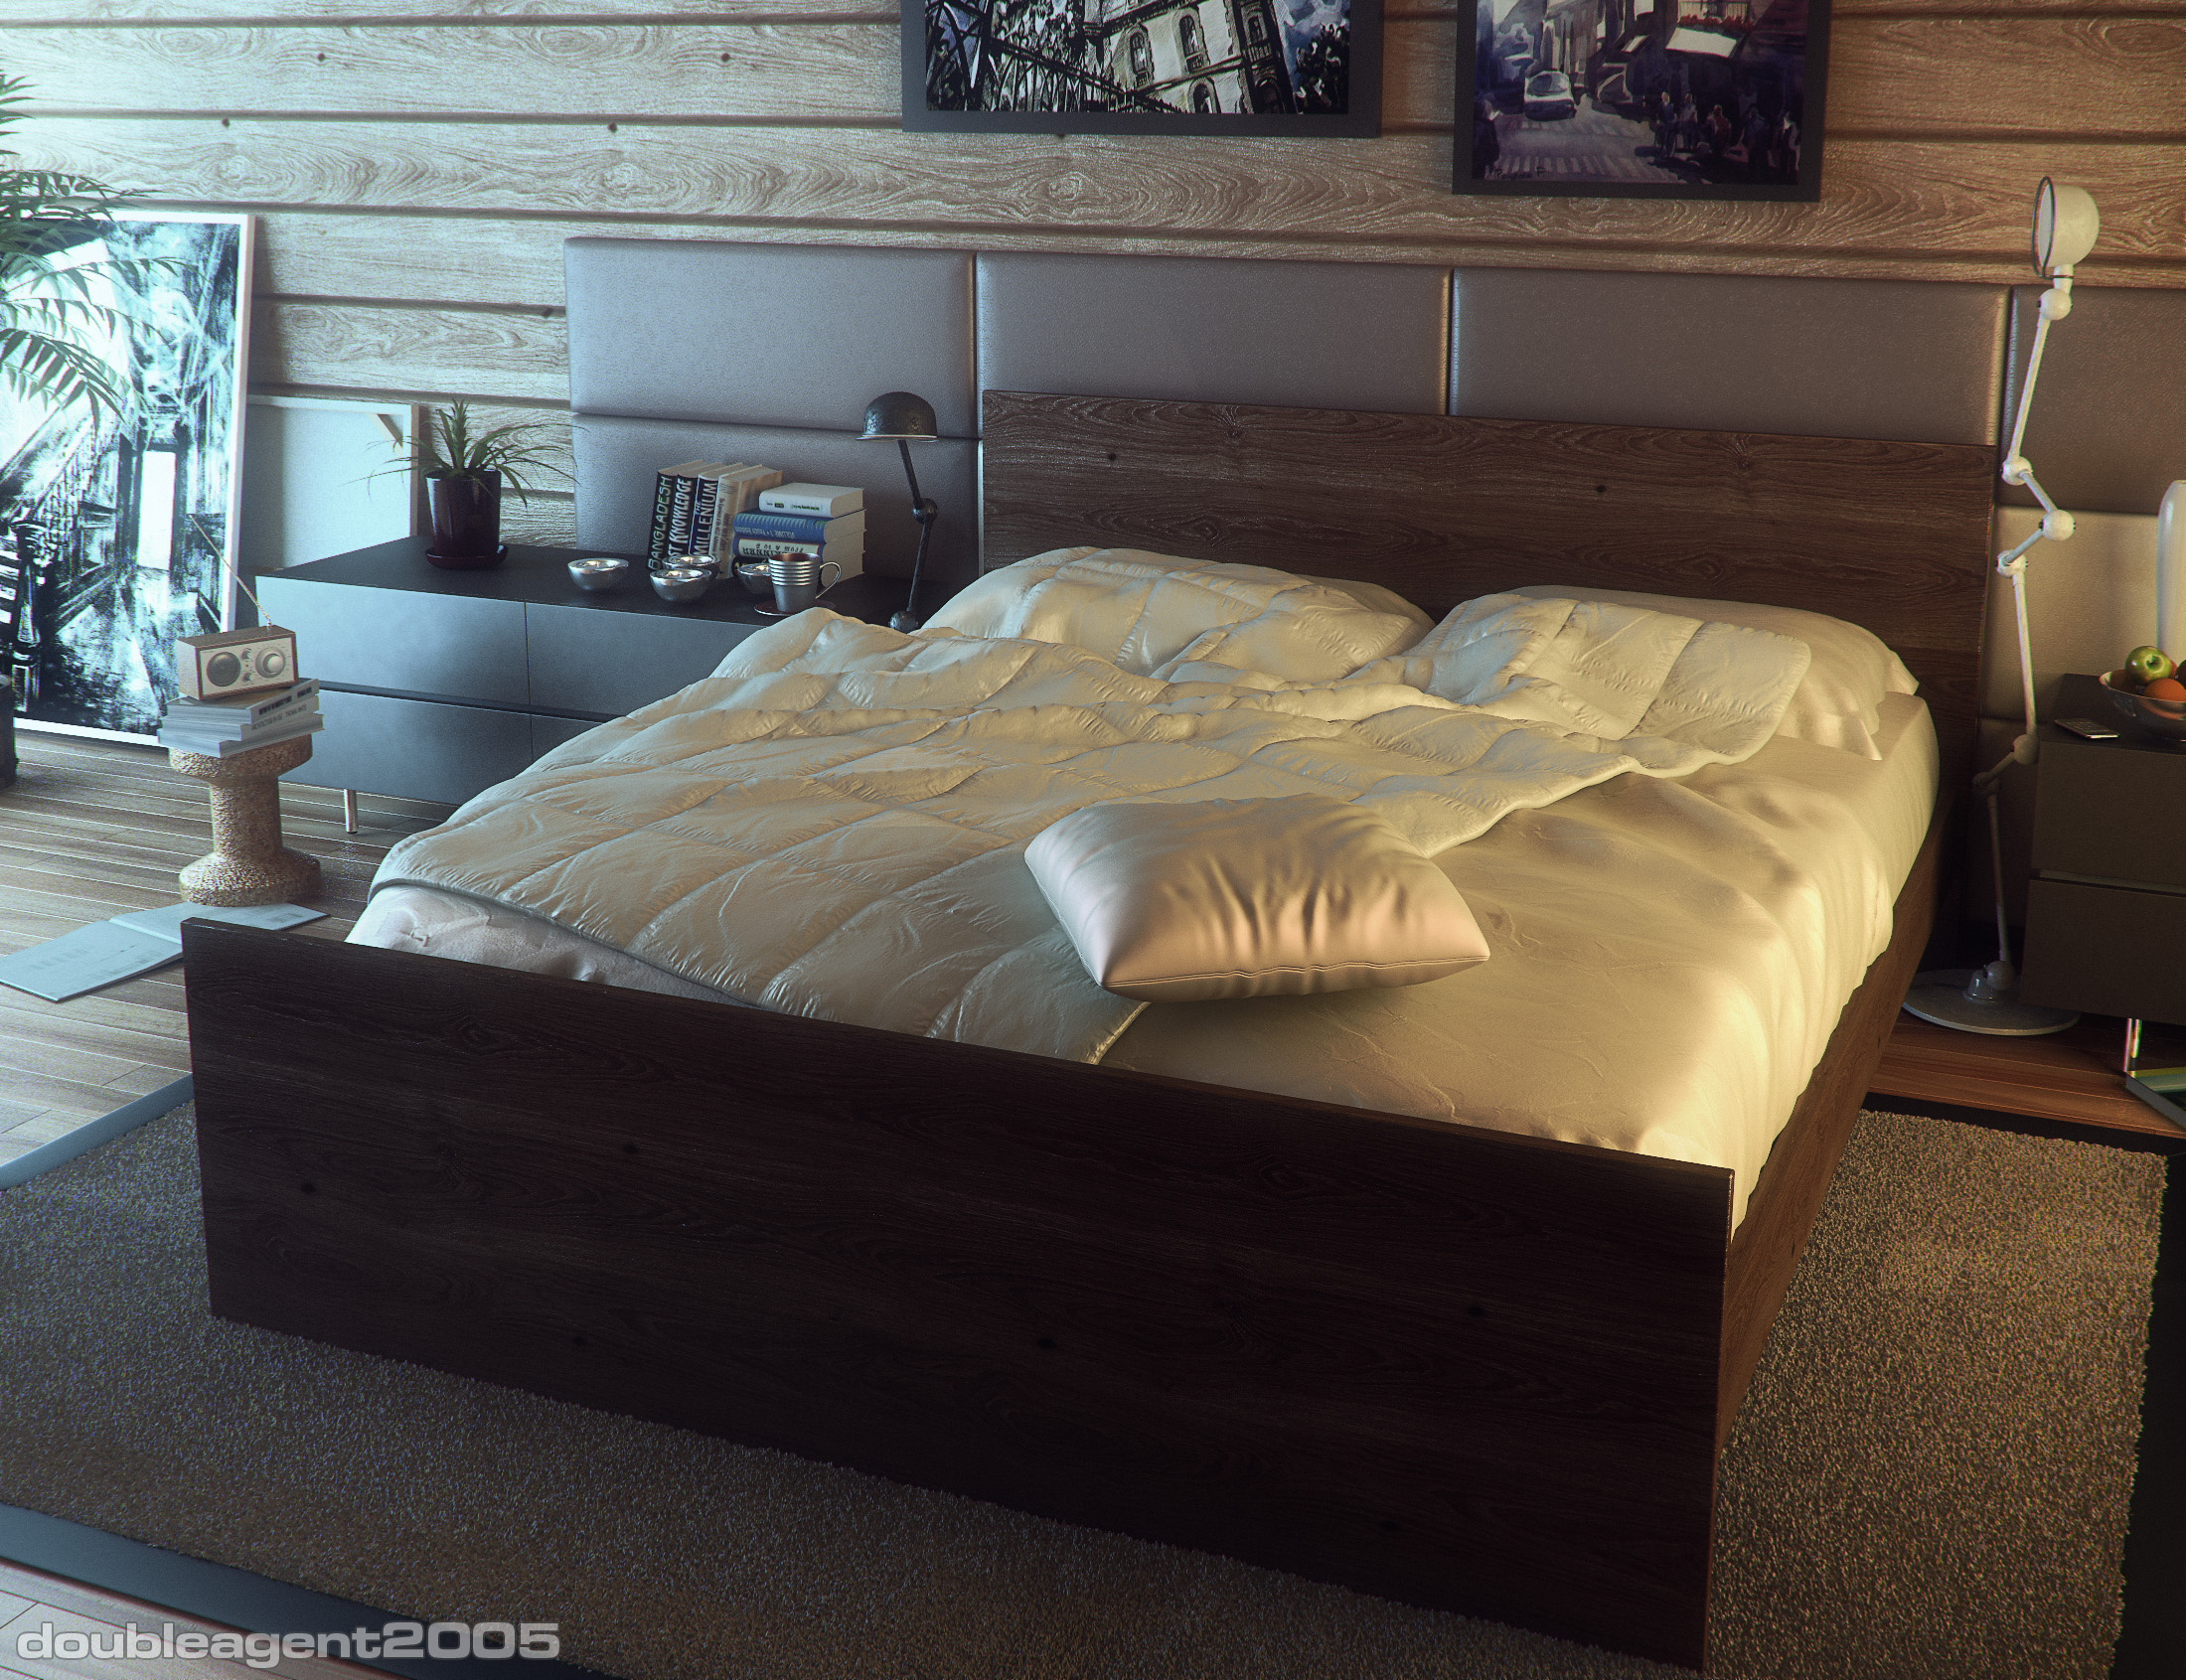 Bedroom interior for log house by doubleagent2005